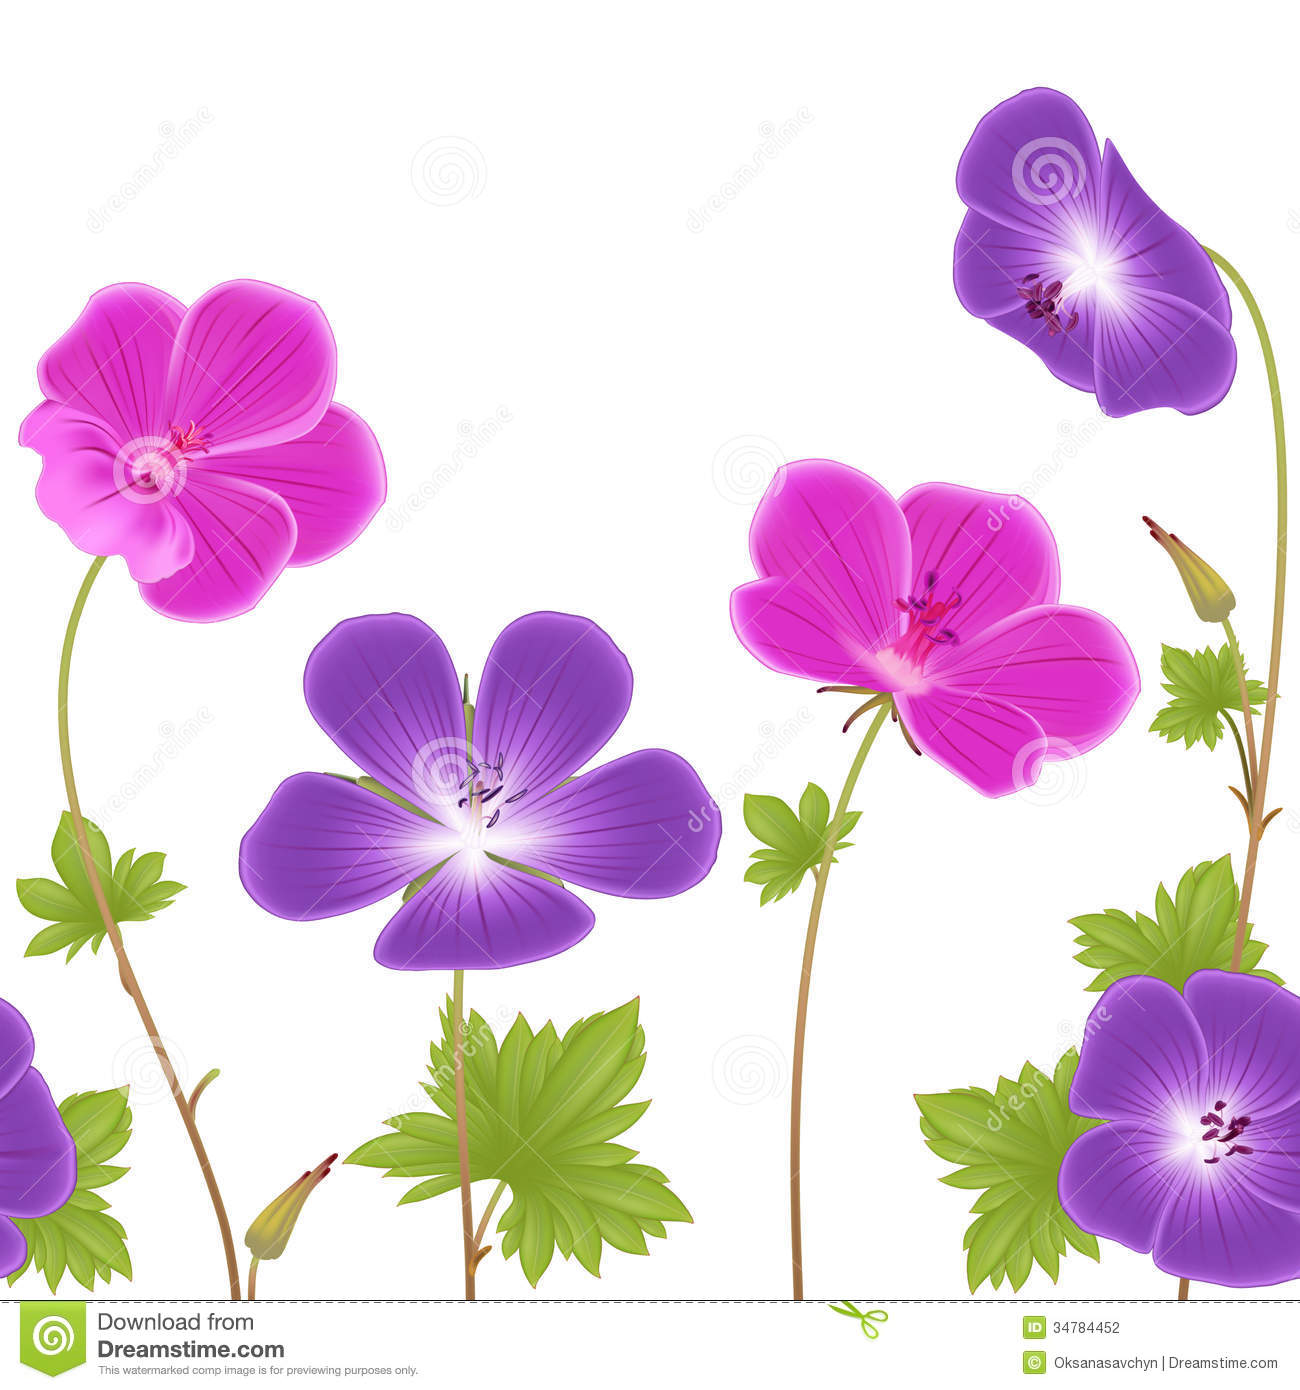 Purple geranium flower stock illustration illustration of grass purple and pink geranium flowers stock illustration mightylinksfo